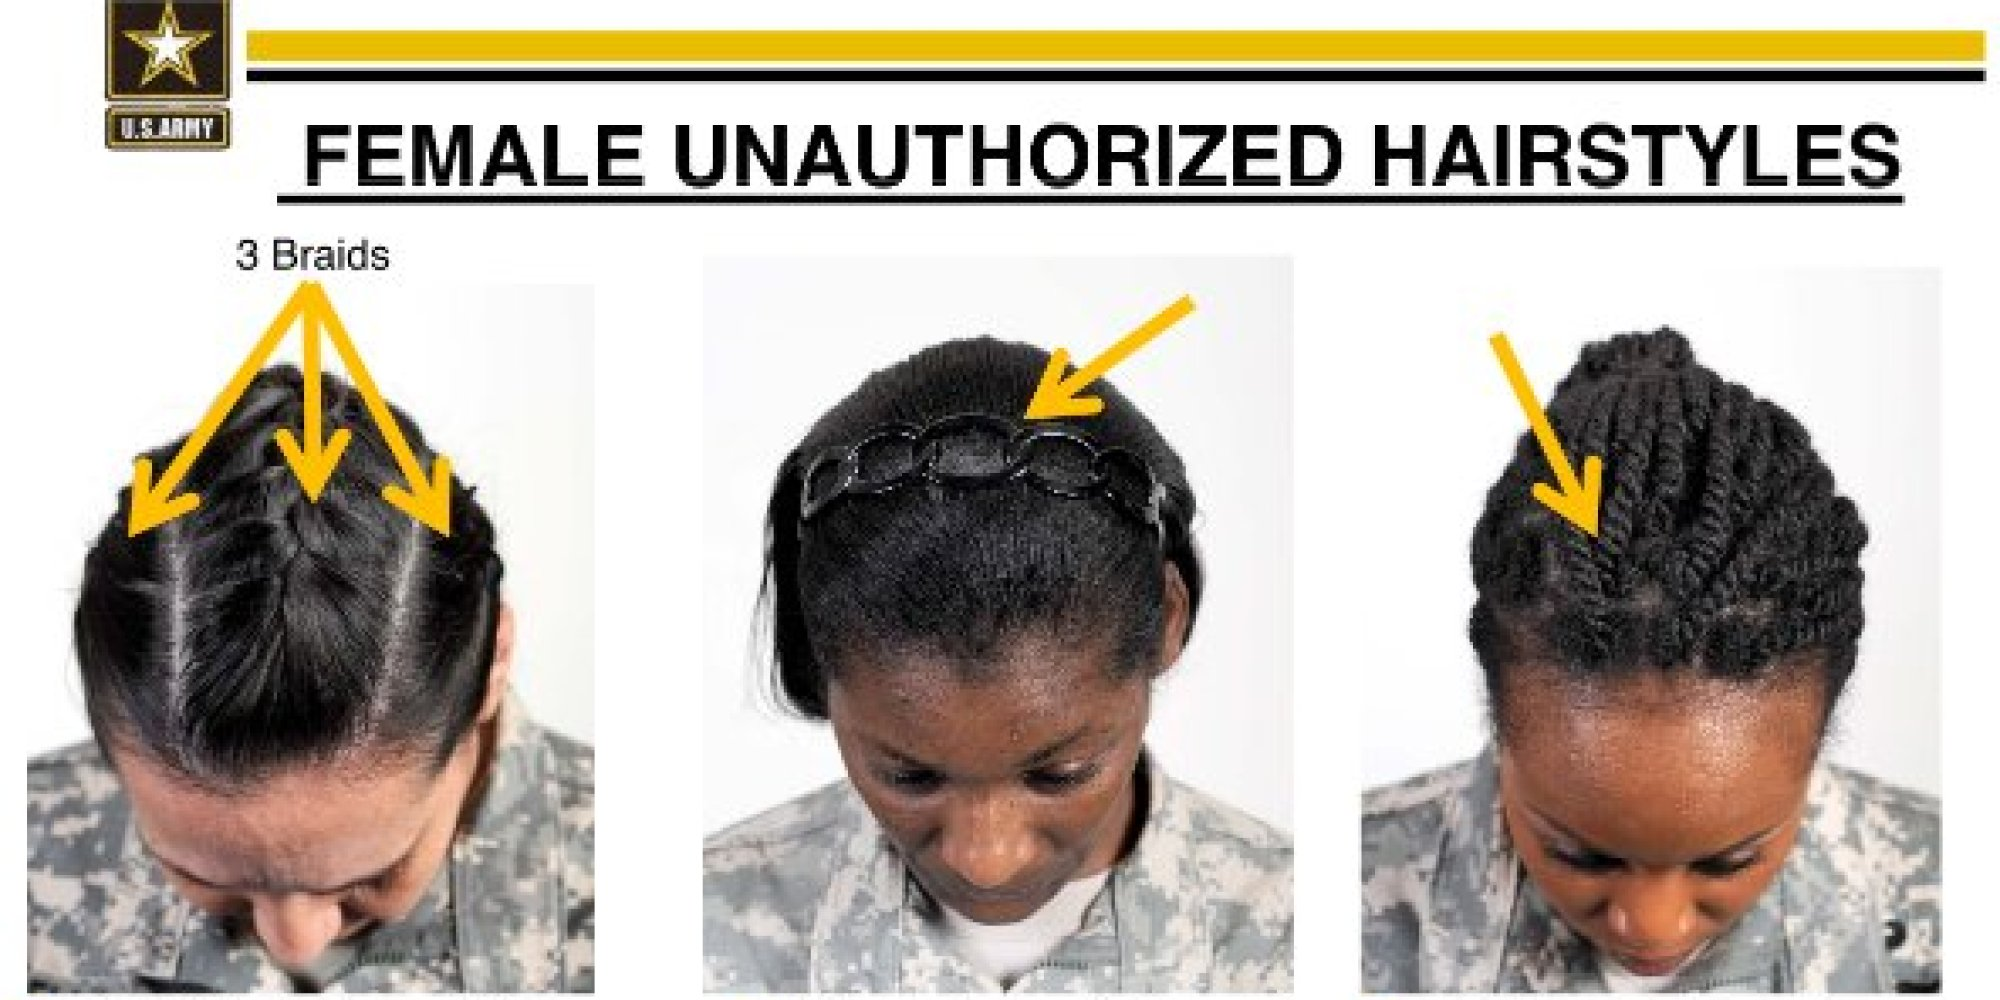 black female lawmakers object to army's 'discriminatory' ban on